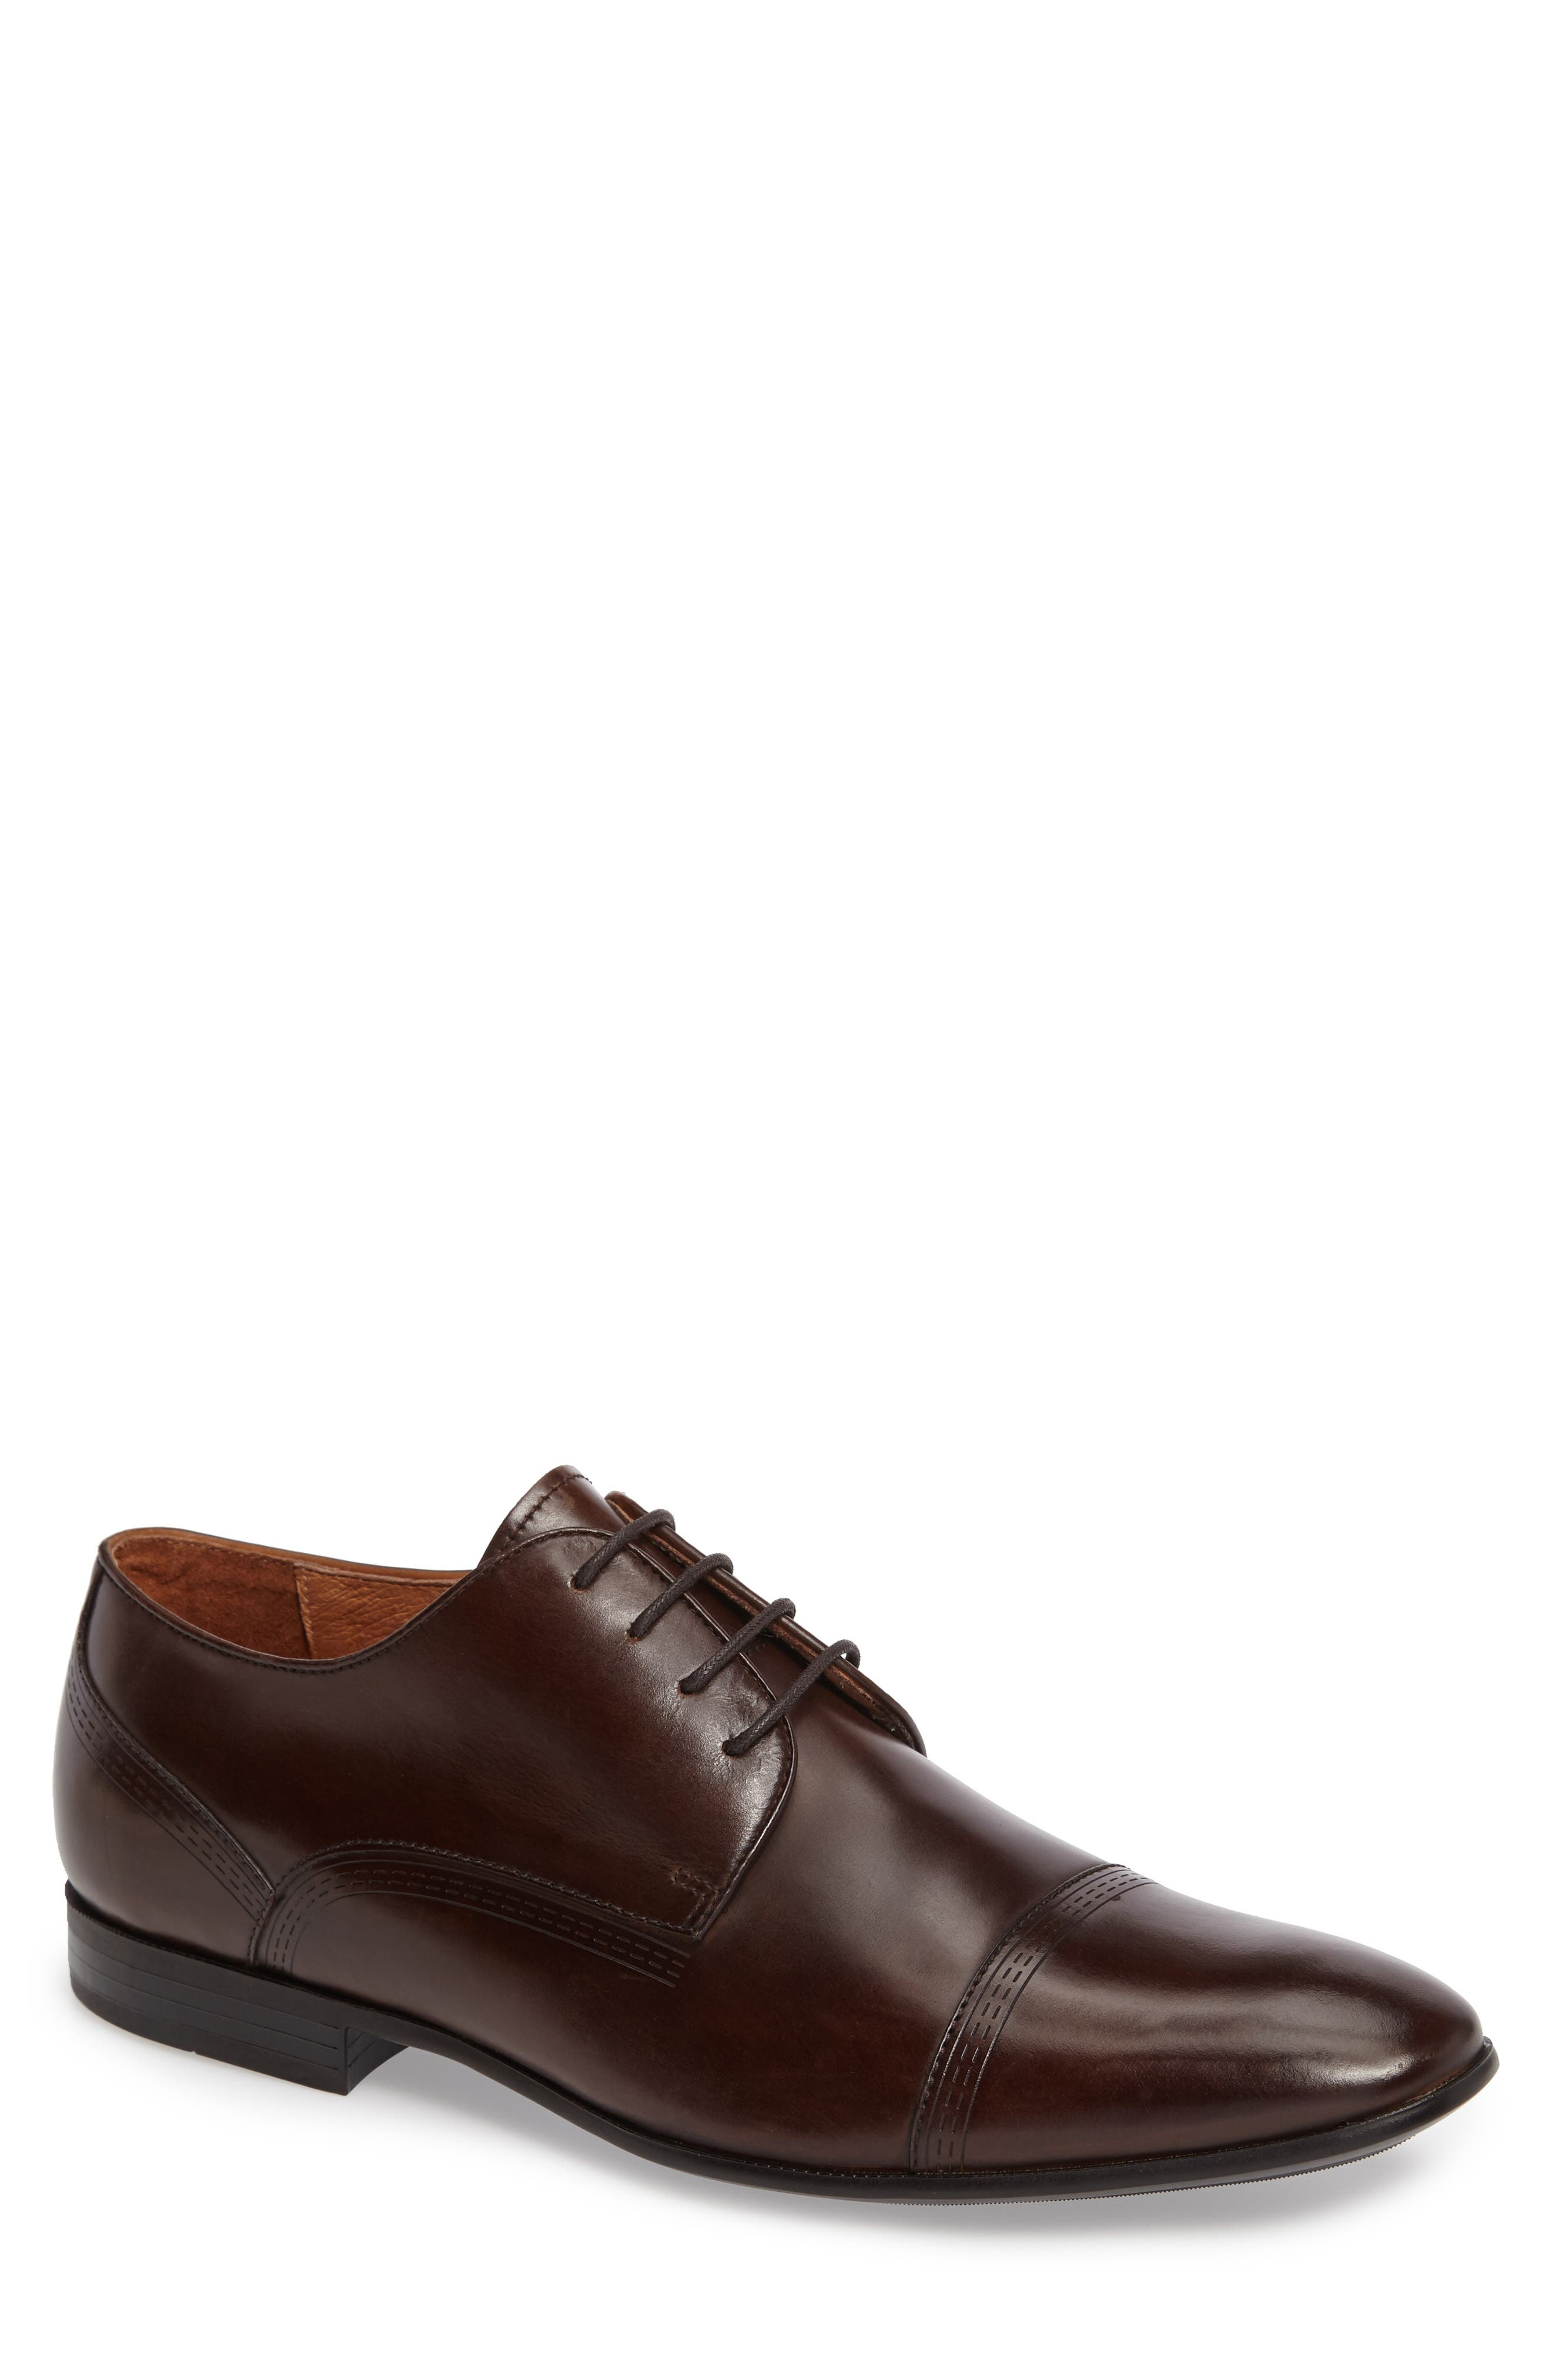 KENNETH COLE NEW YORK Mixed Bag Cap Toe